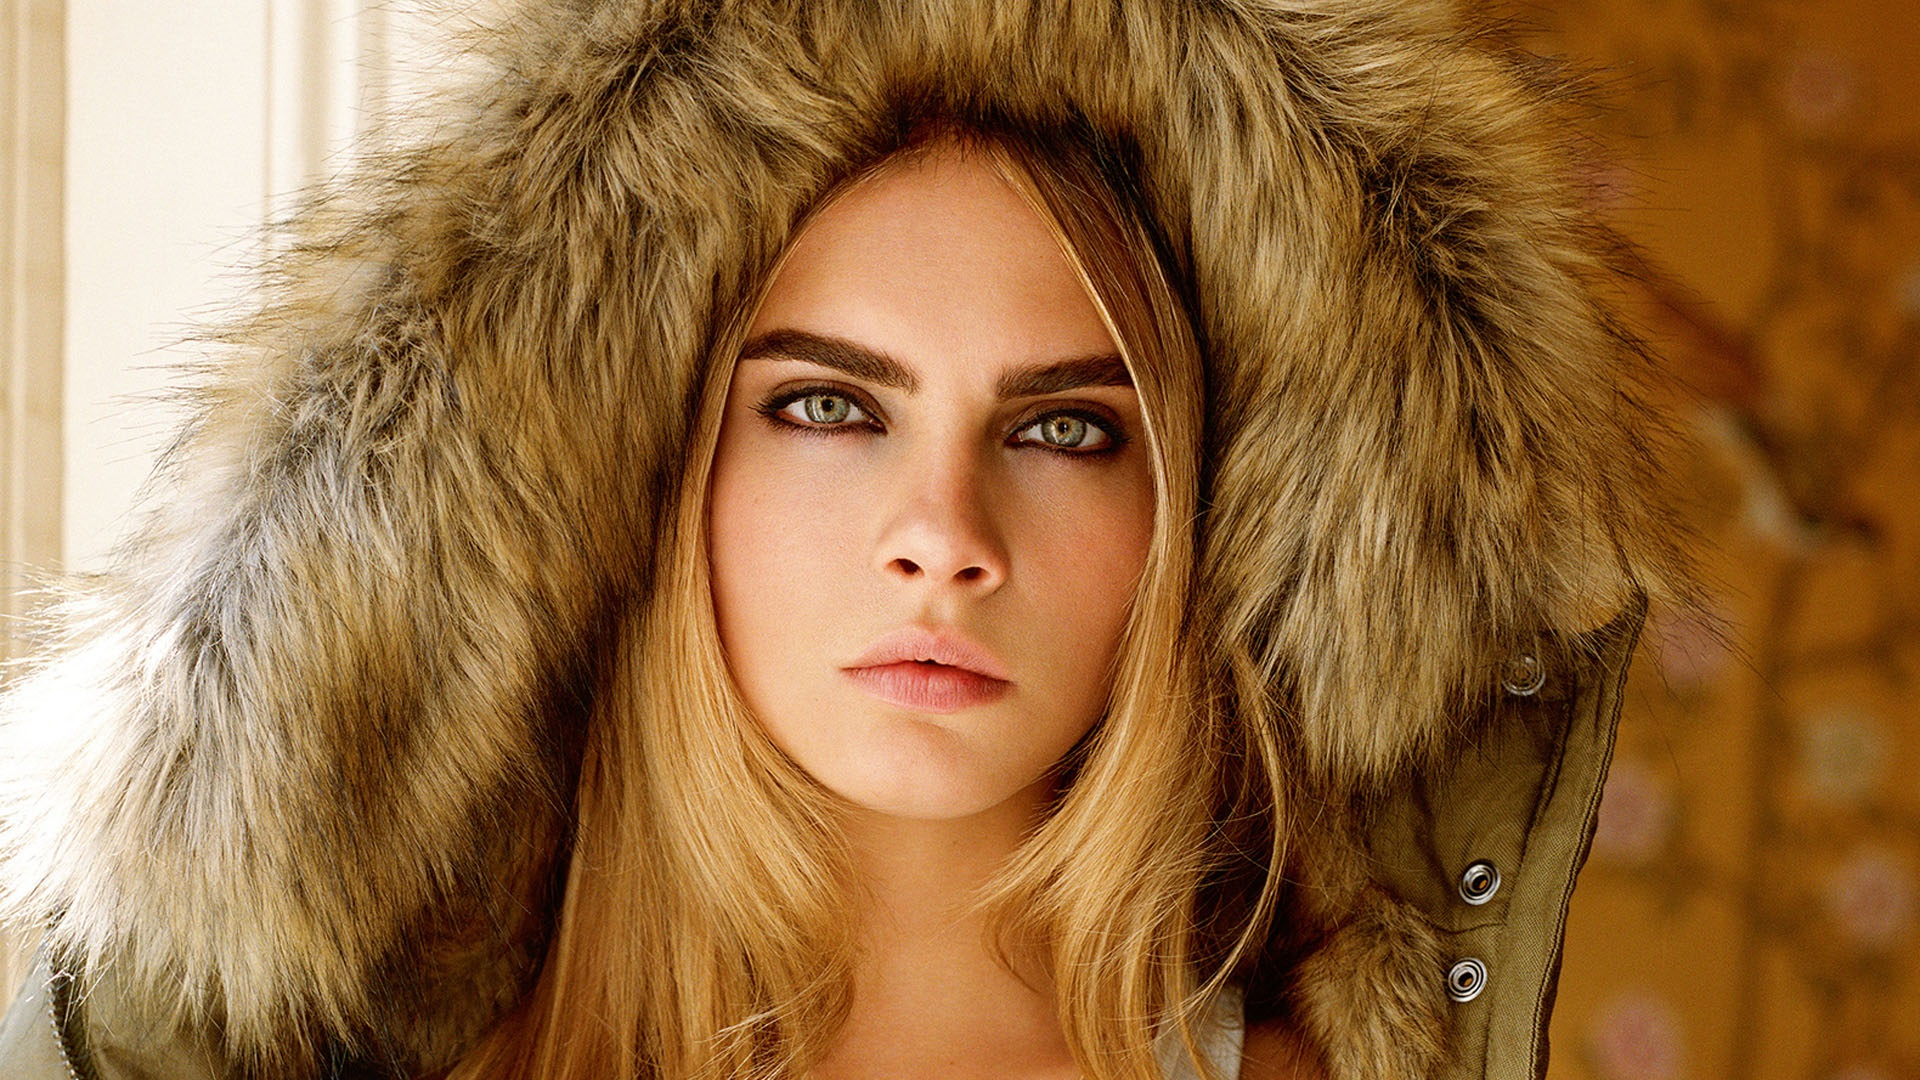 Wallpaper Cara Delevingne Cara Delevingne Wallpaper Hd 1920x1080 Wallpaper Teahub Io